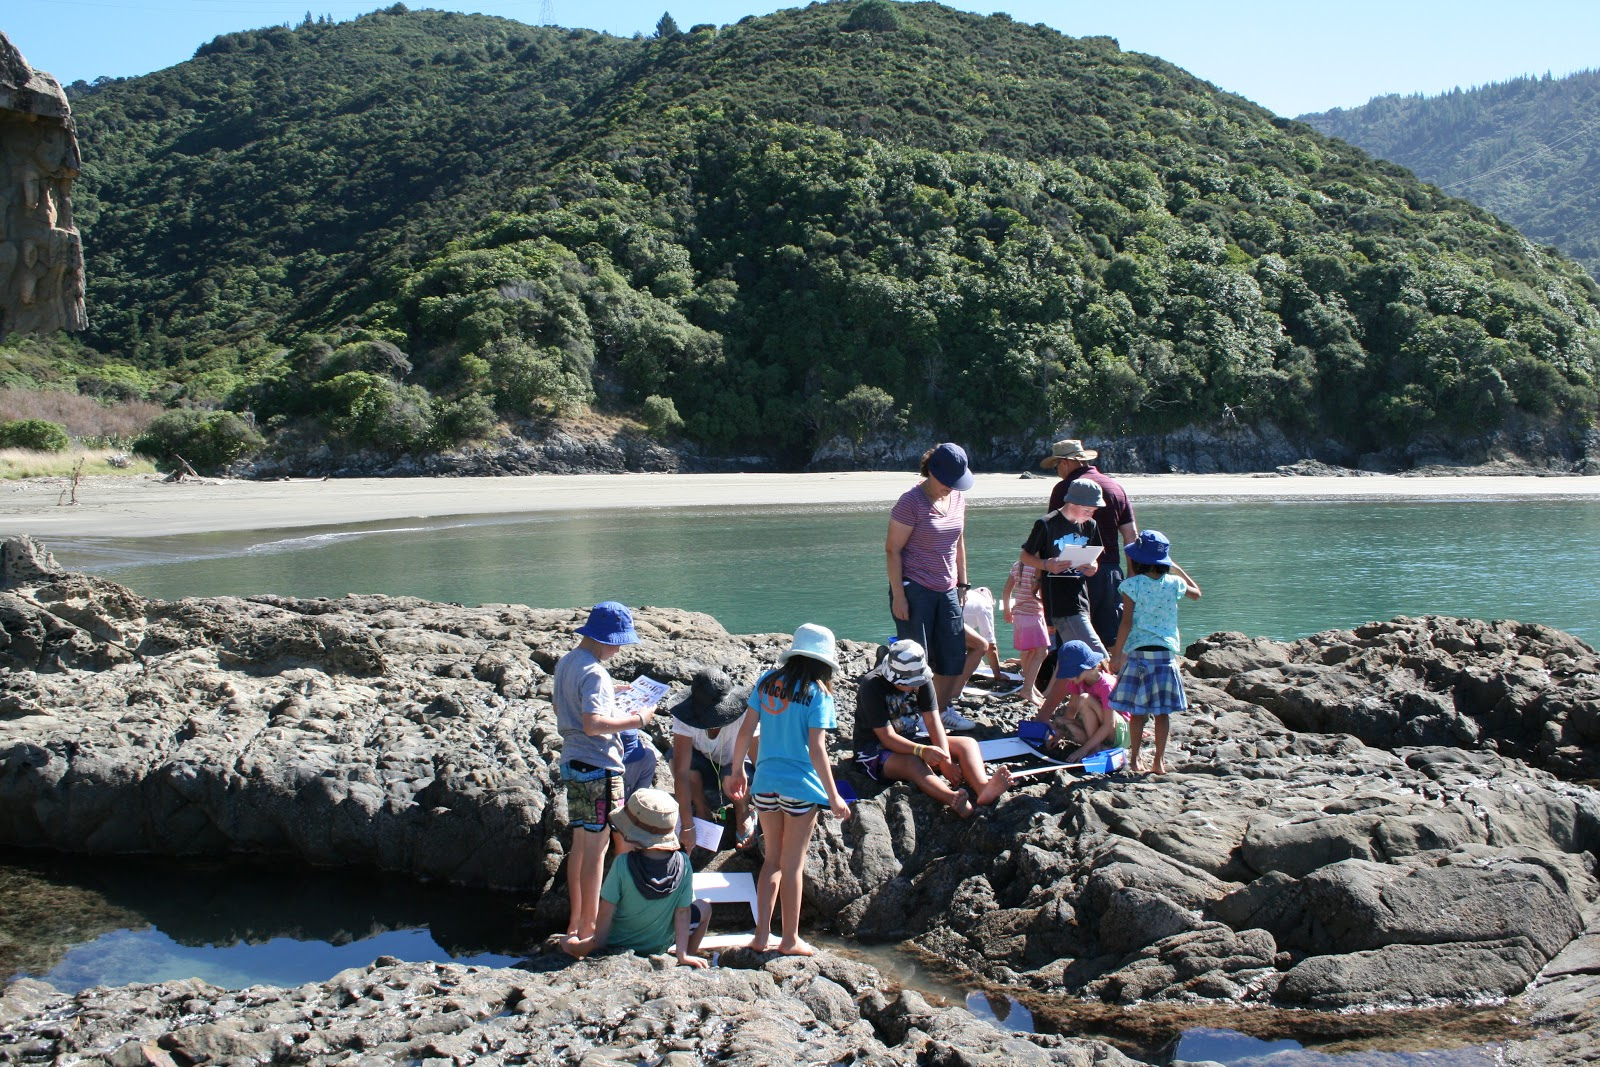 exploring rocky shores Looking for an exciting ocean adventure go no further than the sanctuary's rocky shores and tide pools during low tide, it's a great place to discover sea life without getting wet.